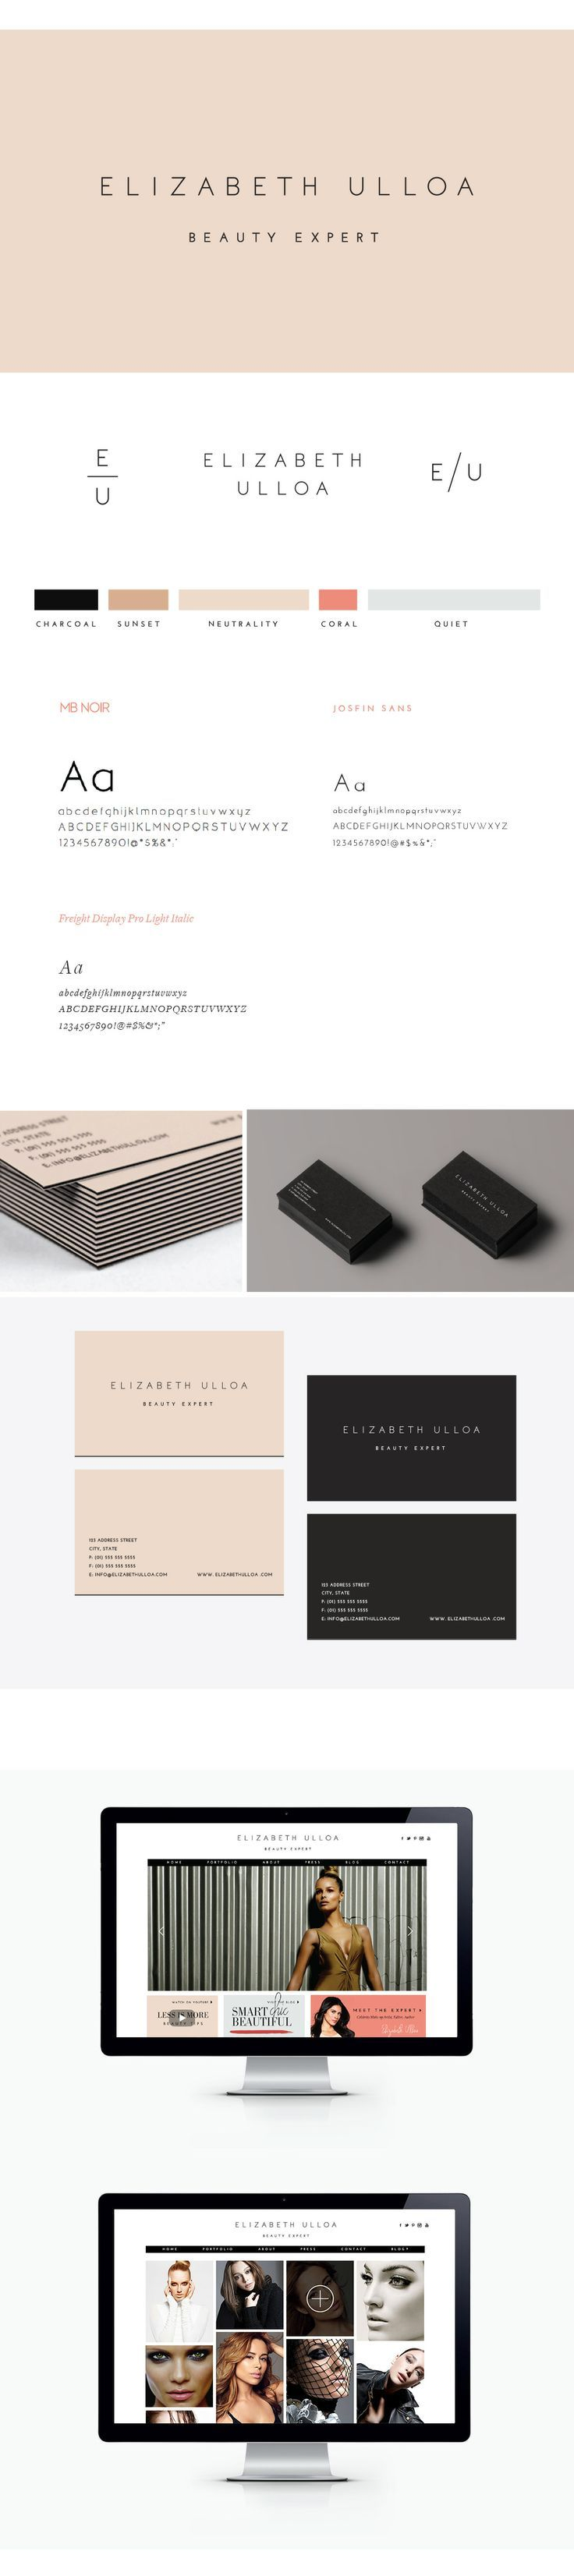 178 Best Elegant Brand Images On Pinterest Corporate Identity